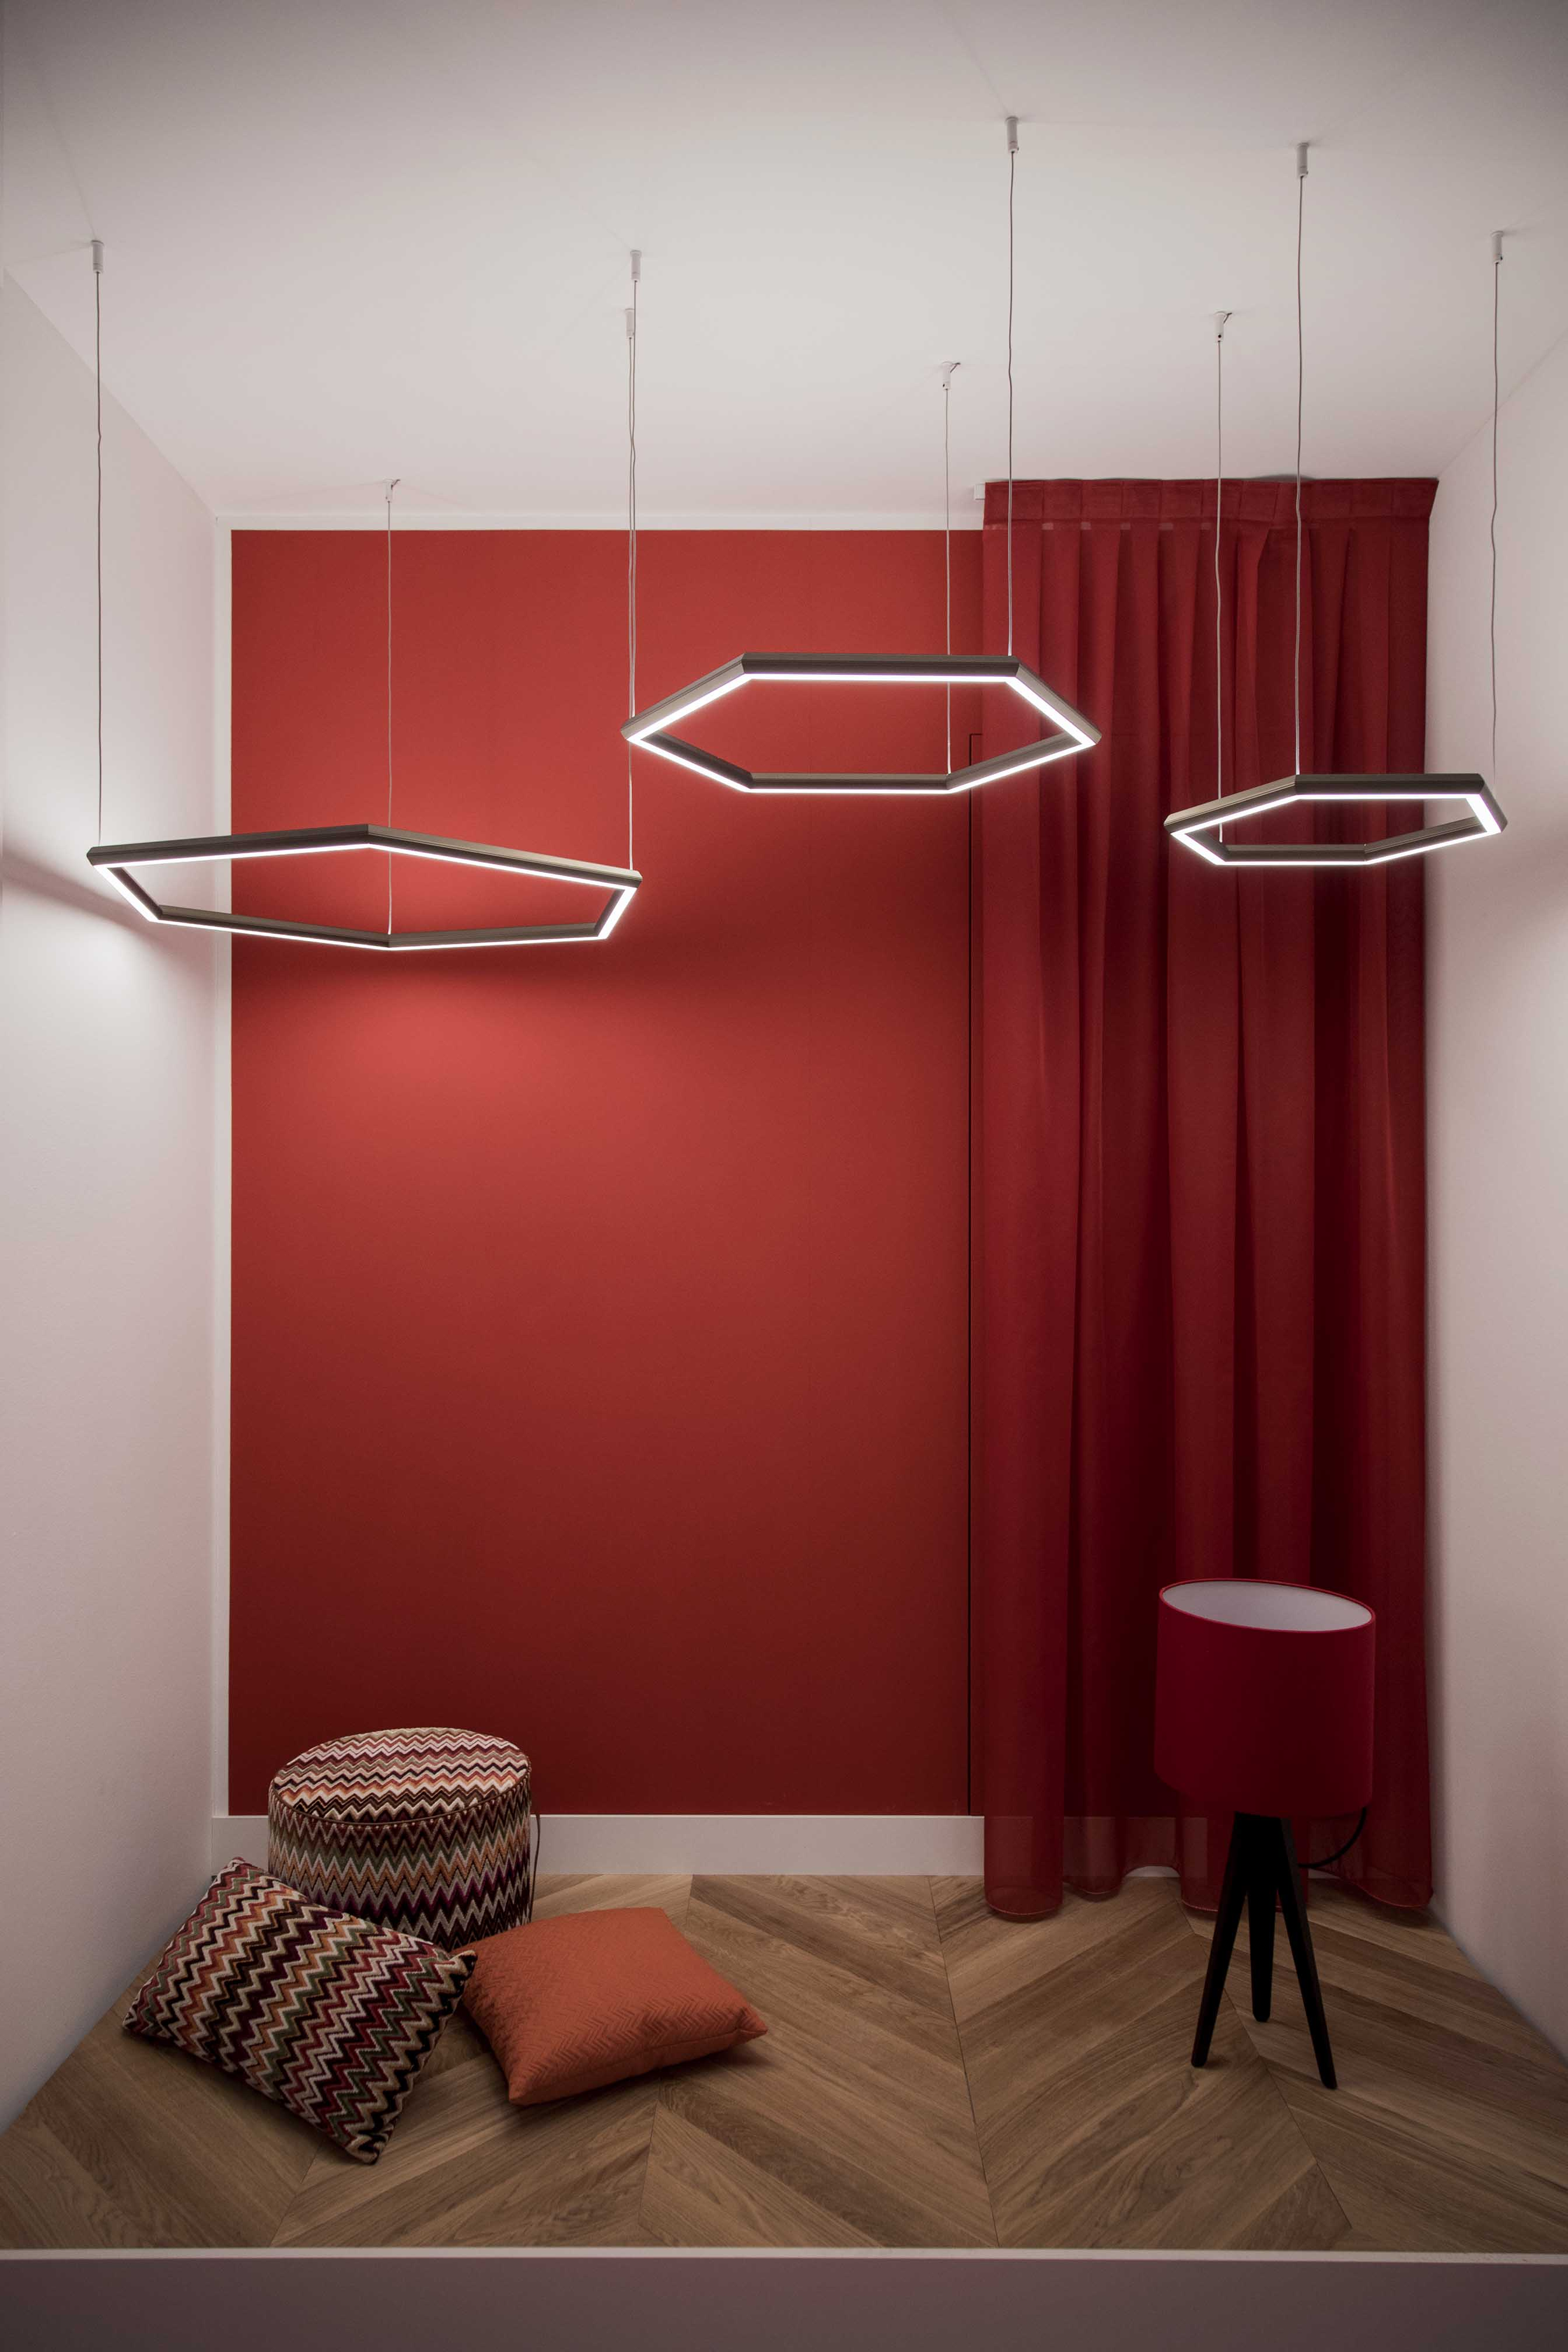 Hexagonal pendant lights hanging from the wall in a changing room with a focal back wall painted in red.